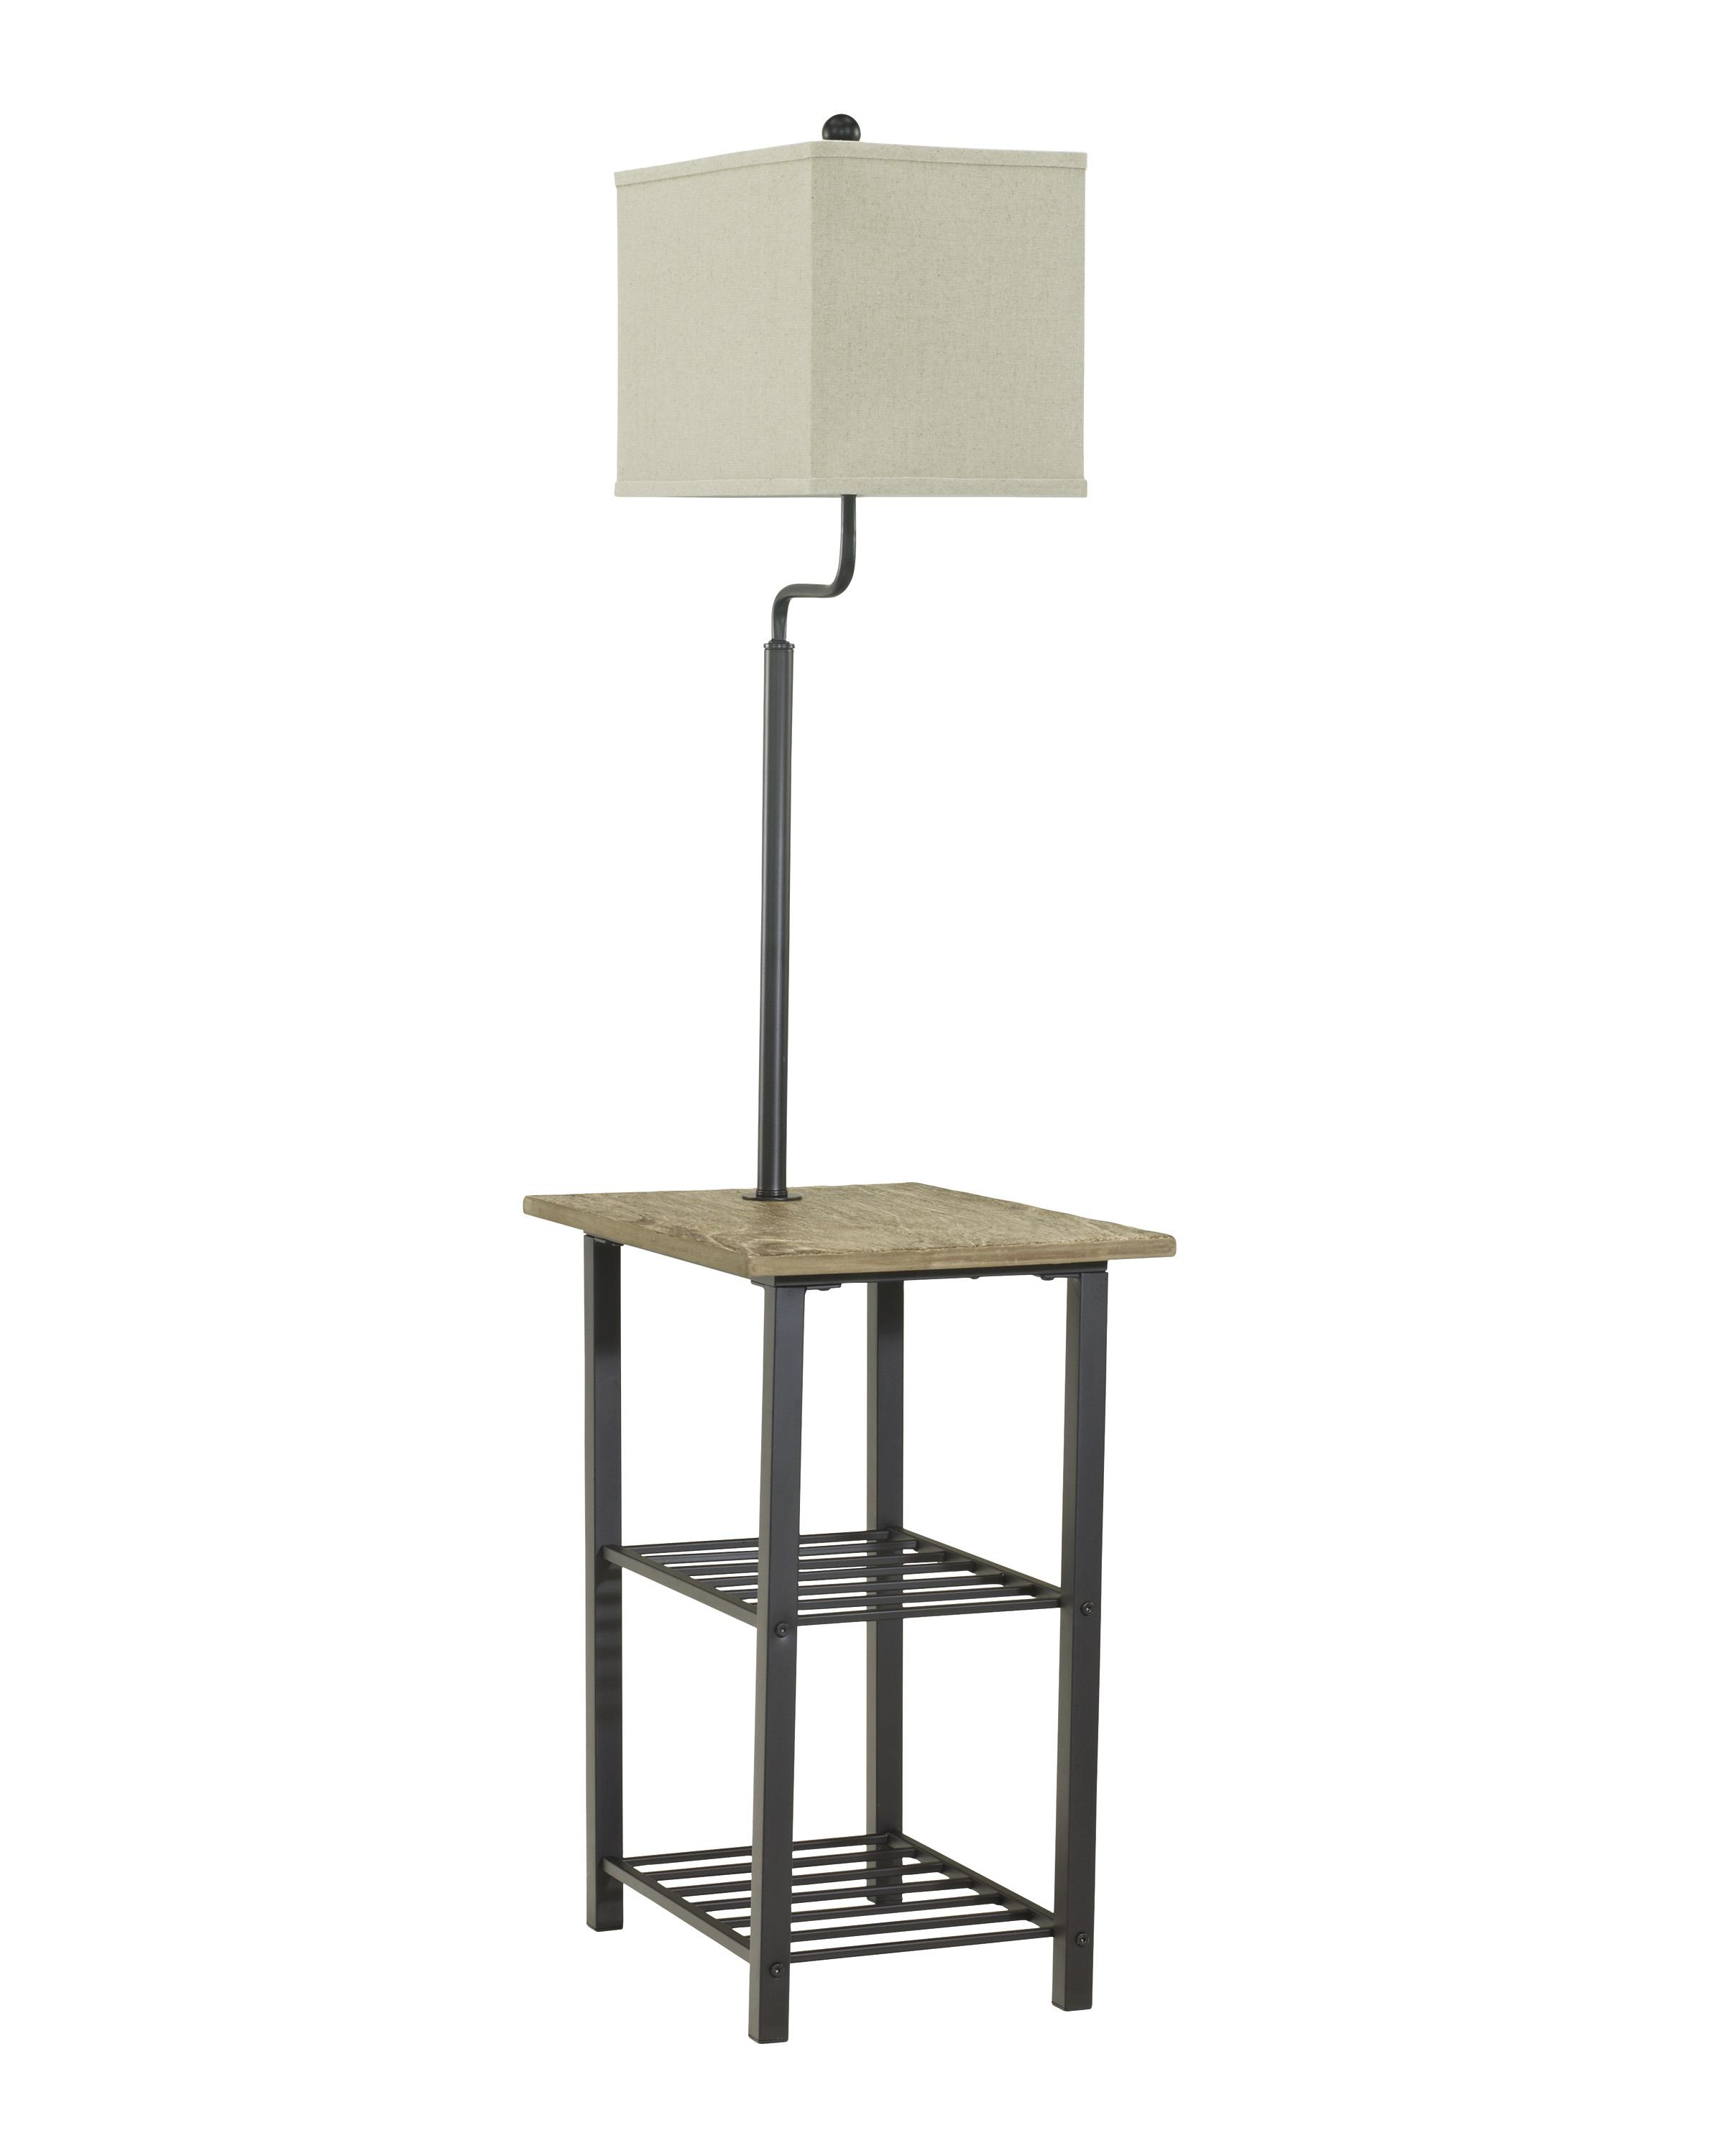 signature design by ashley lamps vintage style metal tray lamp. Black Bedroom Furniture Sets. Home Design Ideas